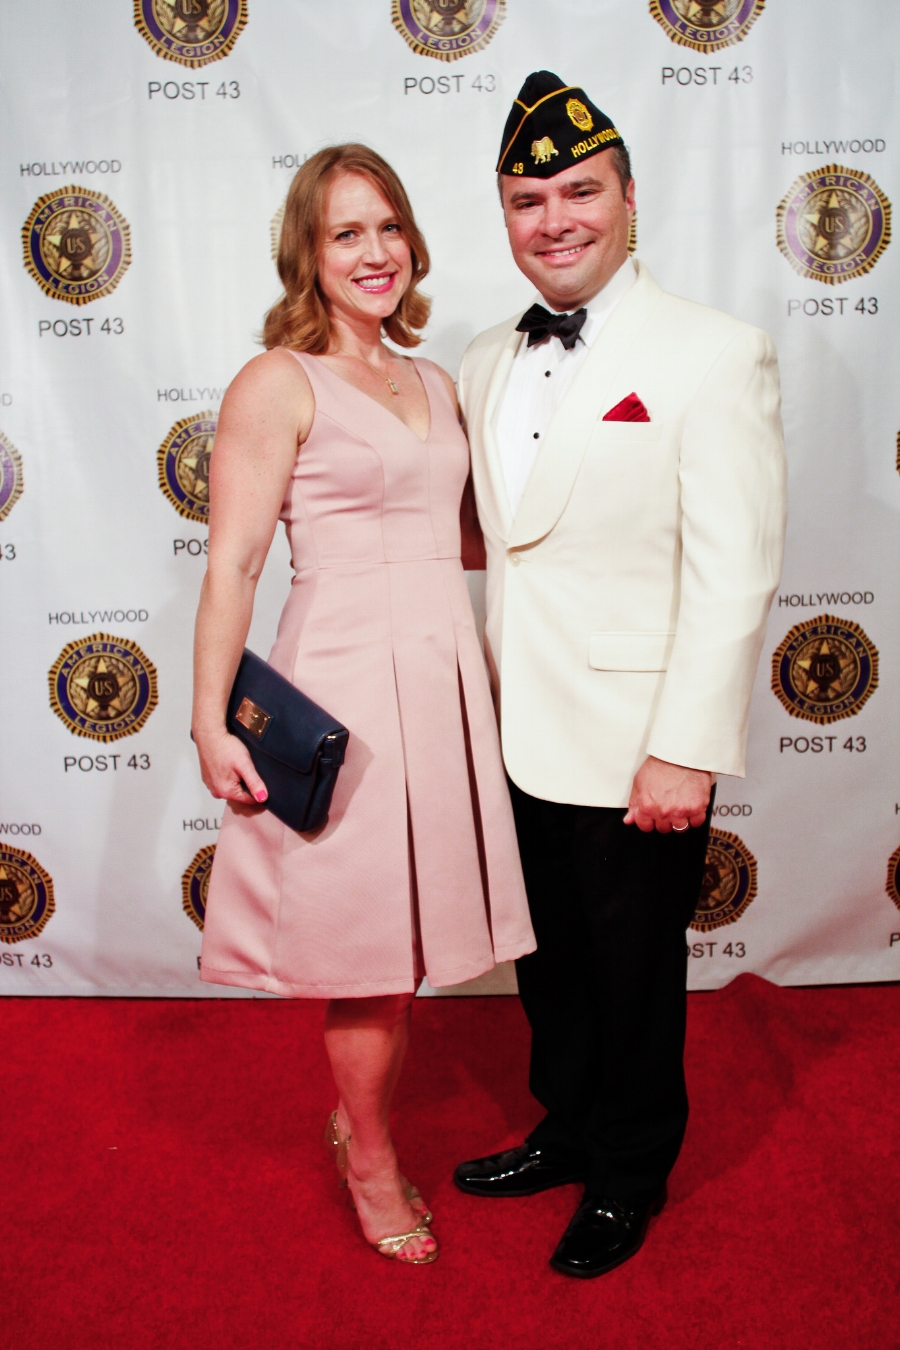 Unit 43 Auxiliary member Jocelyn Rivero and the new commander for 2017-2018 Fernando Rivero on the red carpet at the 2017 Commander's Ball, June 17, 2017.  (photo by David Tenenbaum)  RED CARPET PHOTOS NOW AVAILABLE  HERE !